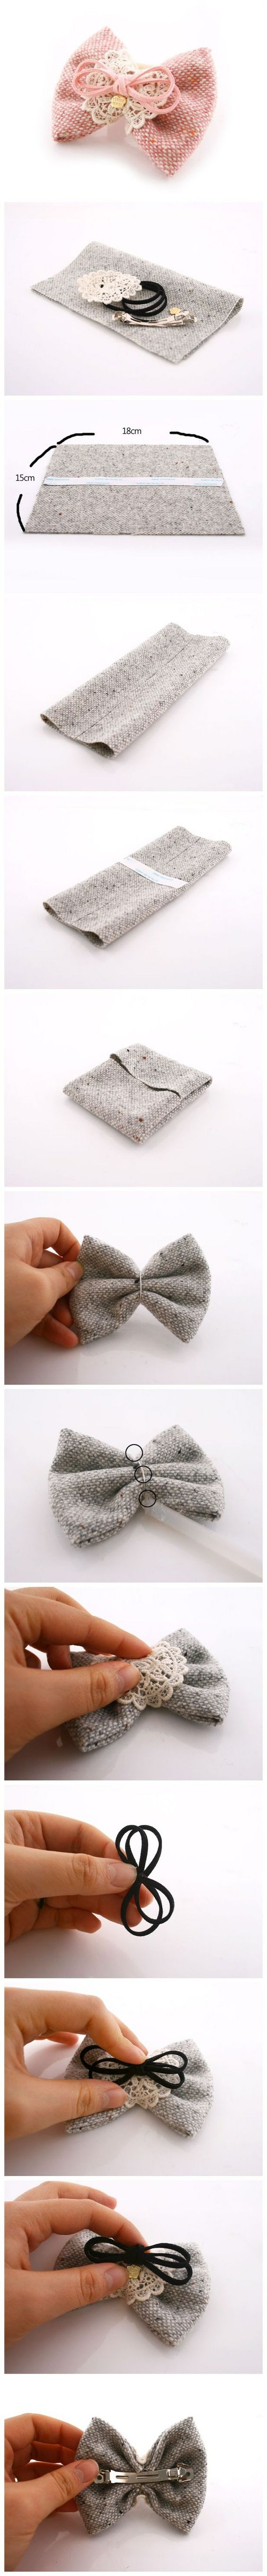 fabric bows making